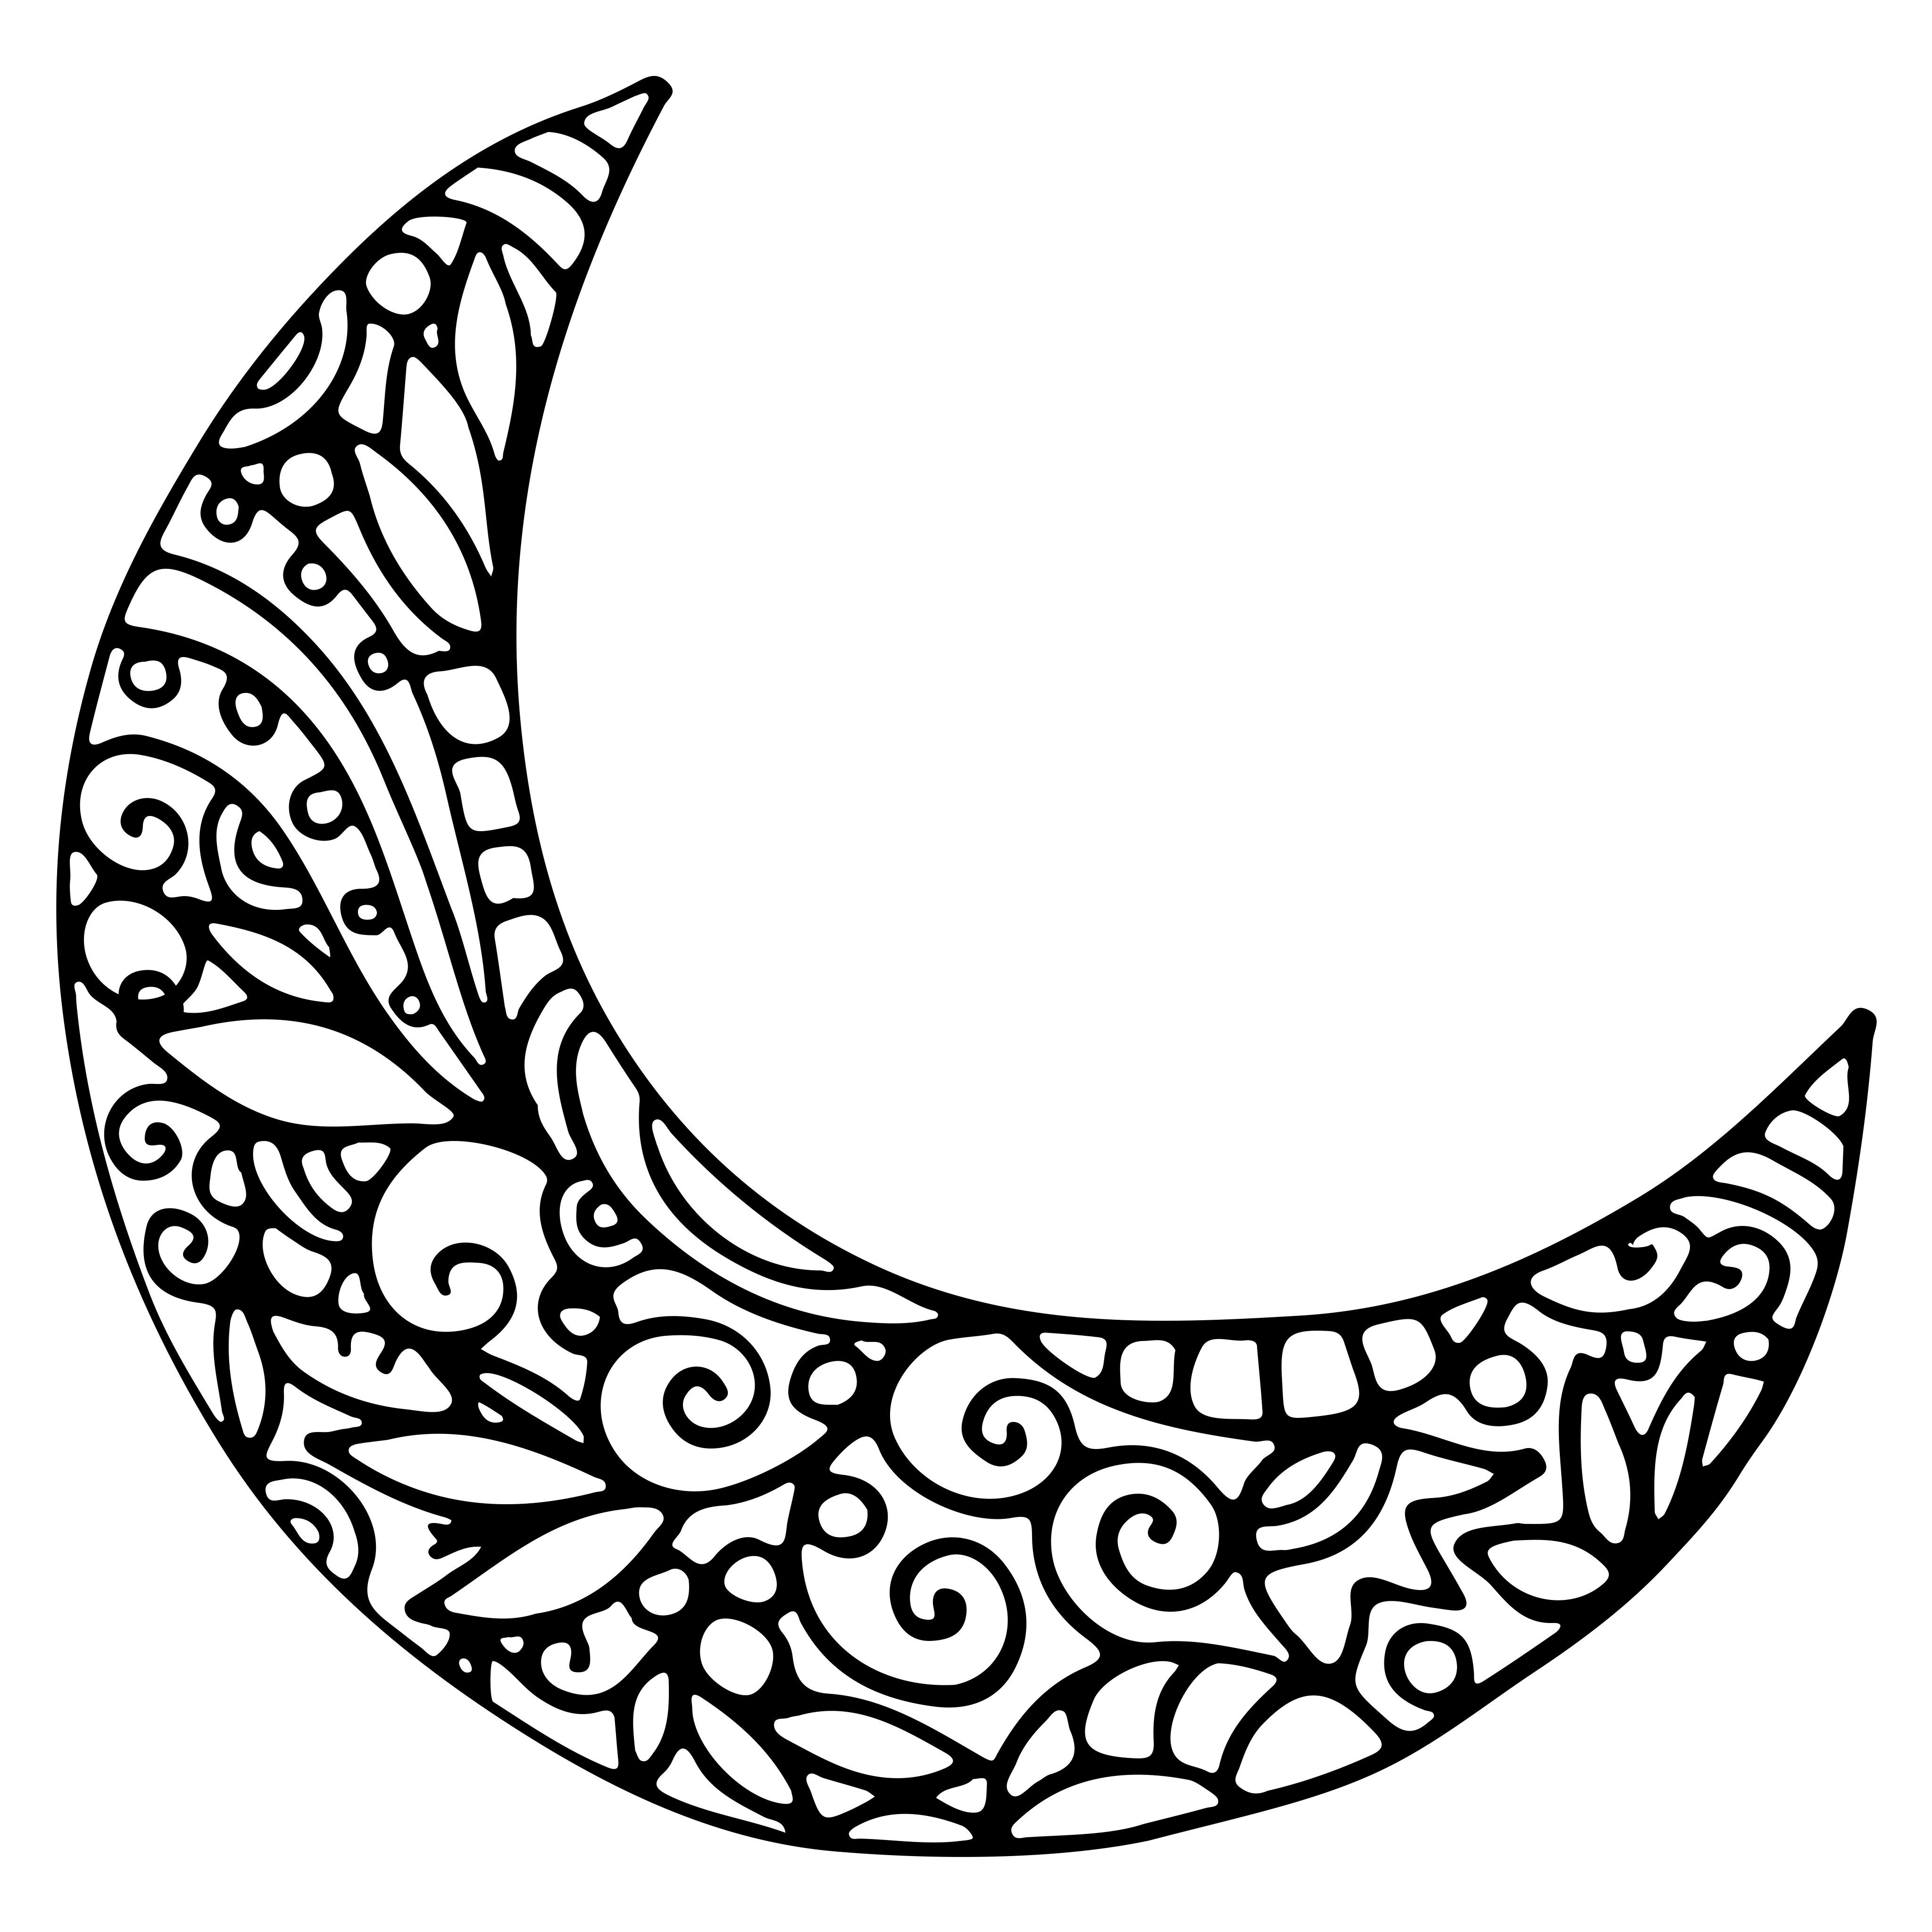 crescent moon coloring page | Wood crafts | Pinterest | Mandala ...